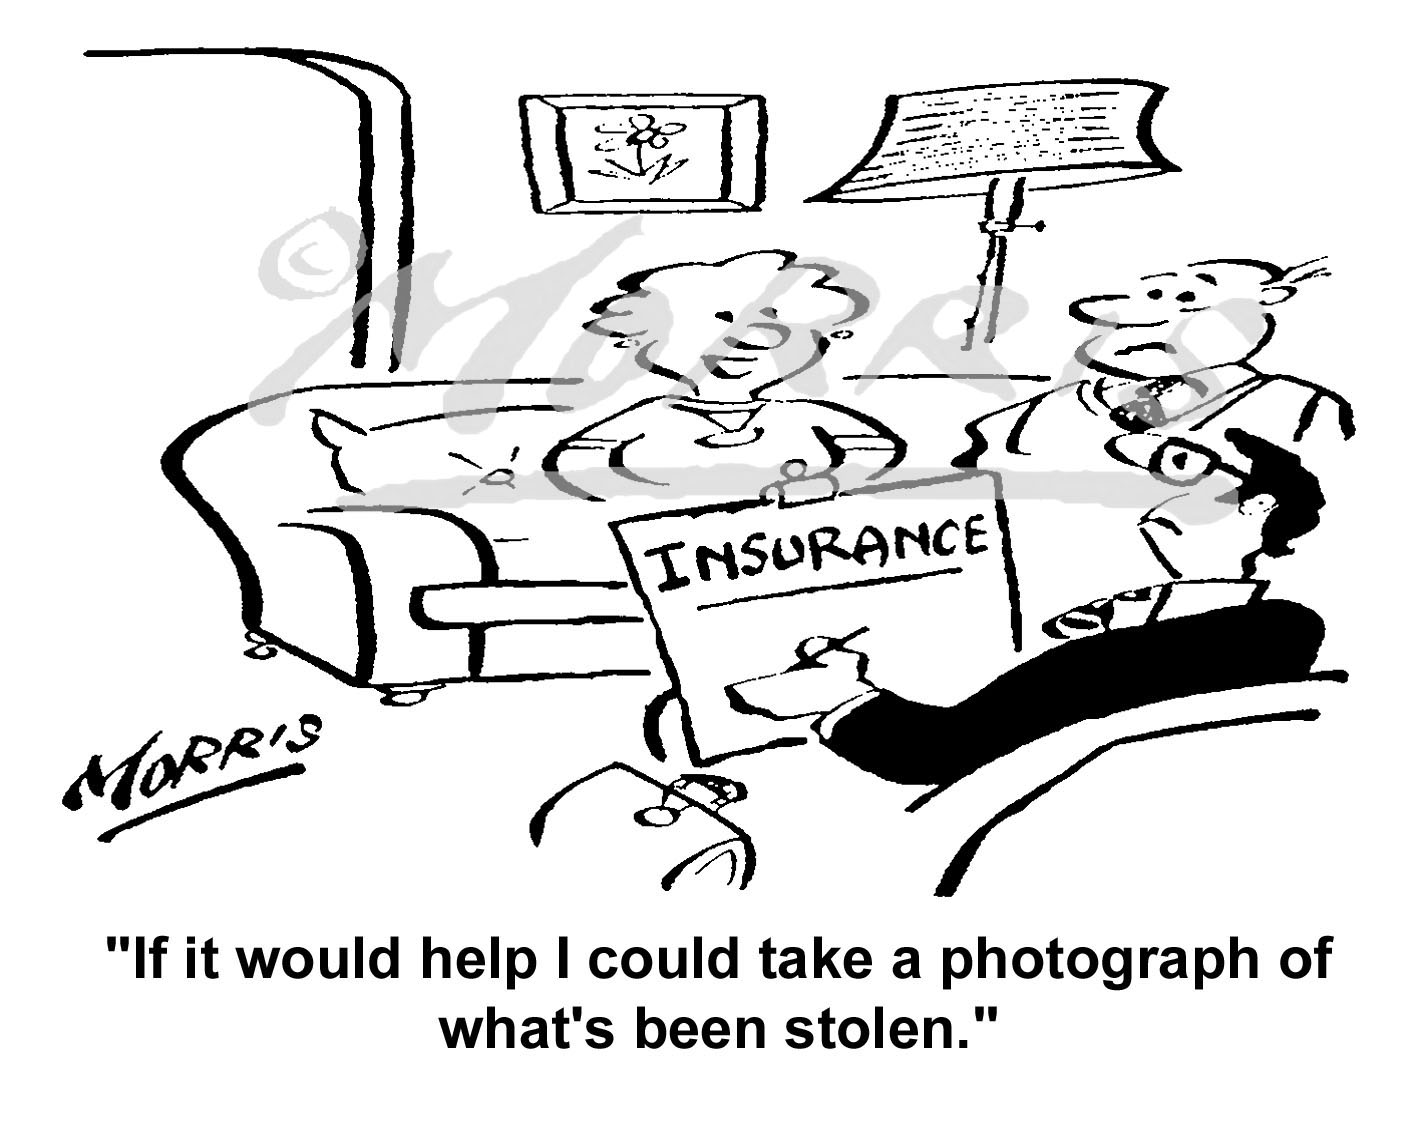 House contents insurance cartoon – Ref: 5068bw